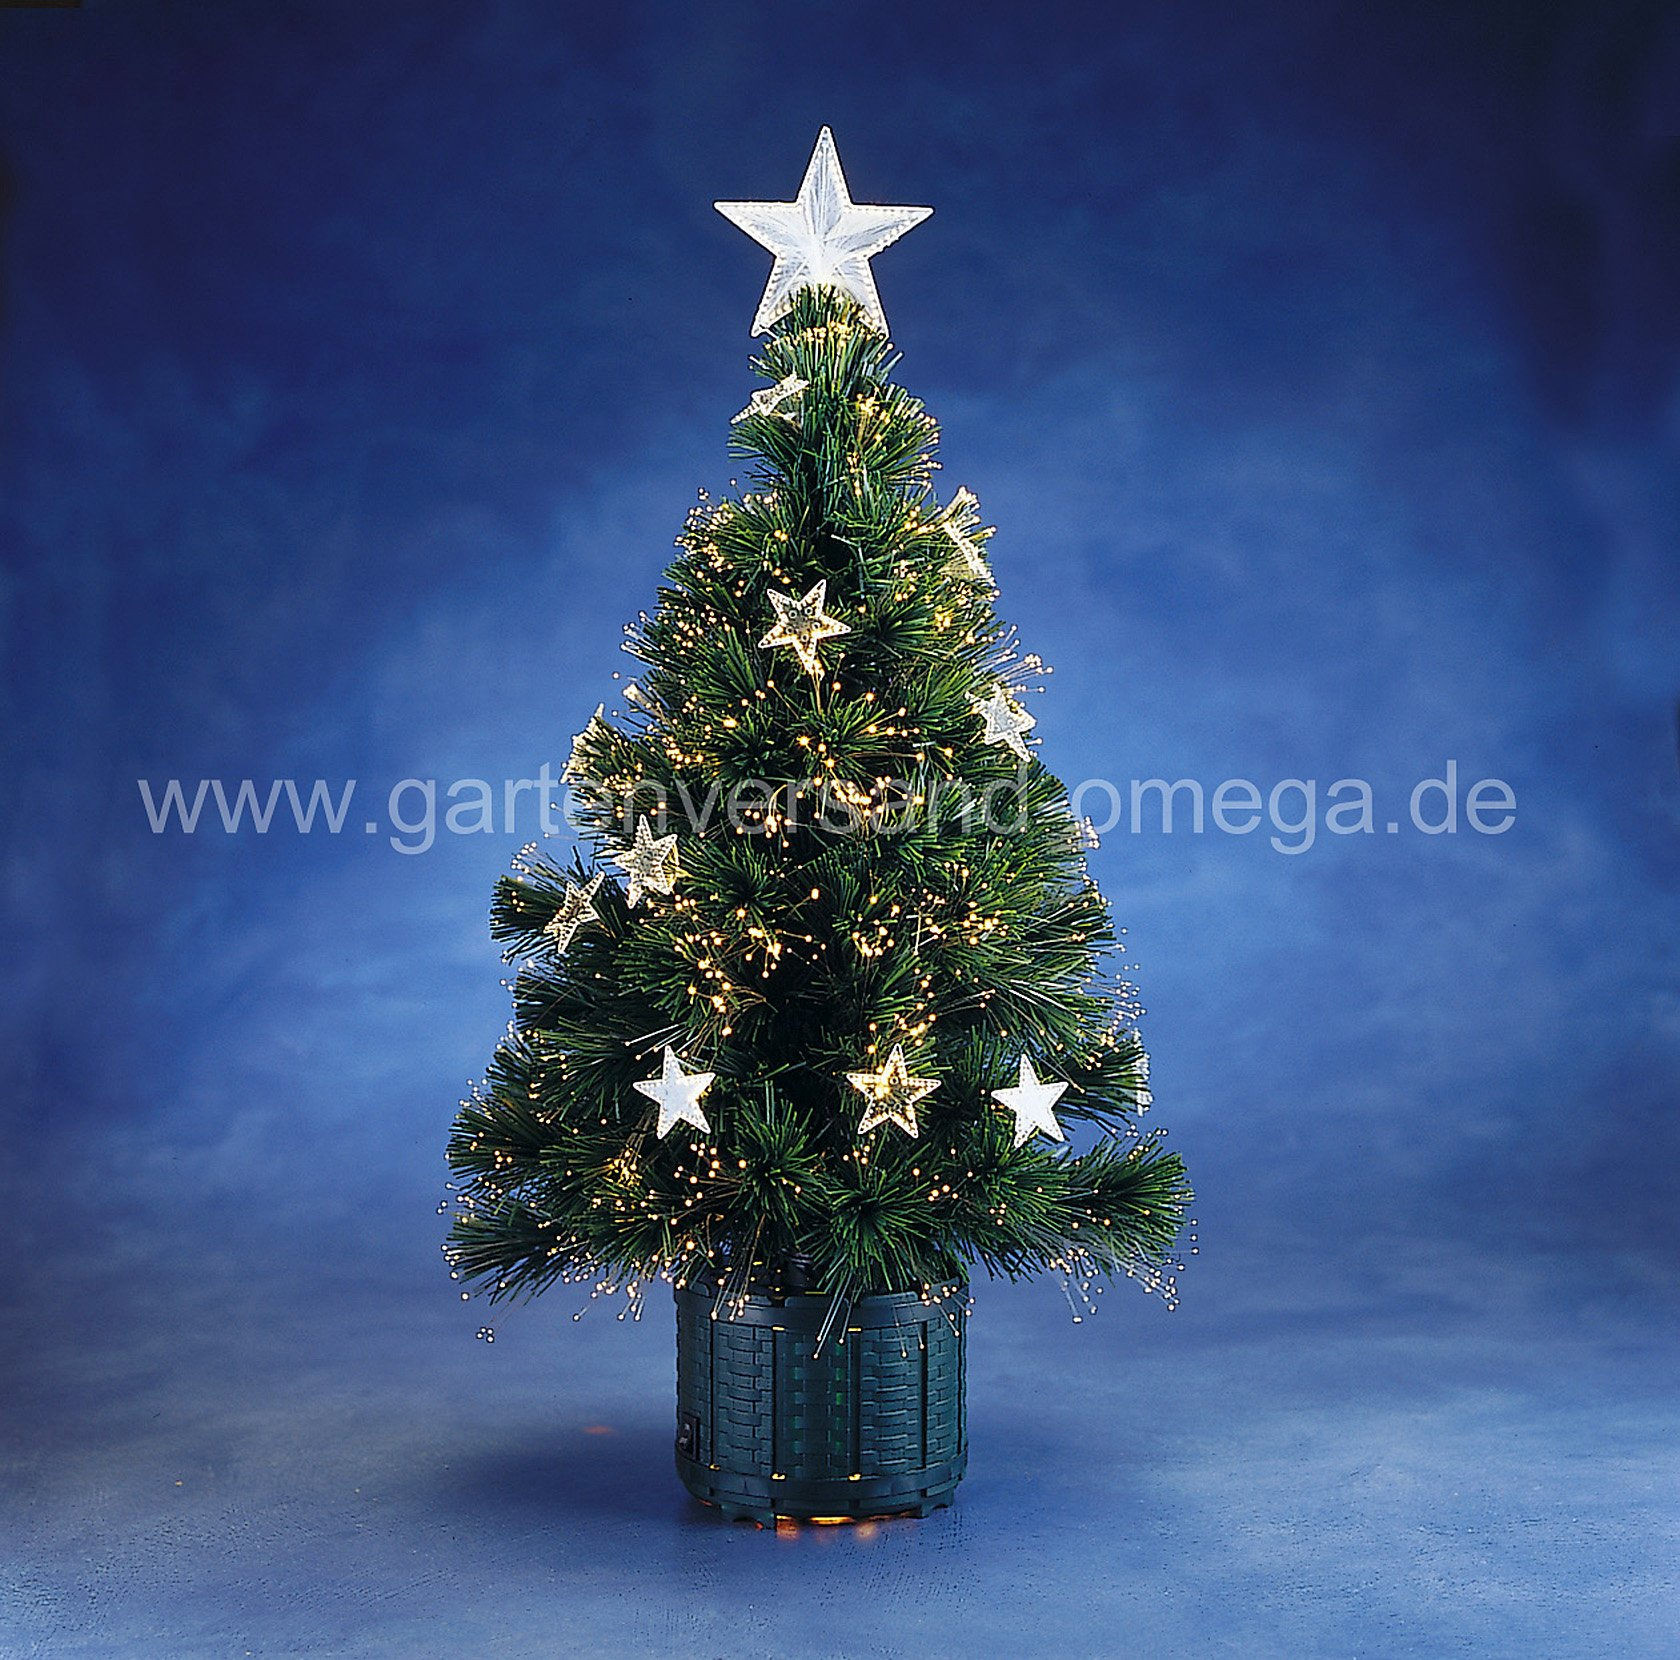 fiberoptik weihnachtsbaum mini weihnachtsbaum. Black Bedroom Furniture Sets. Home Design Ideas